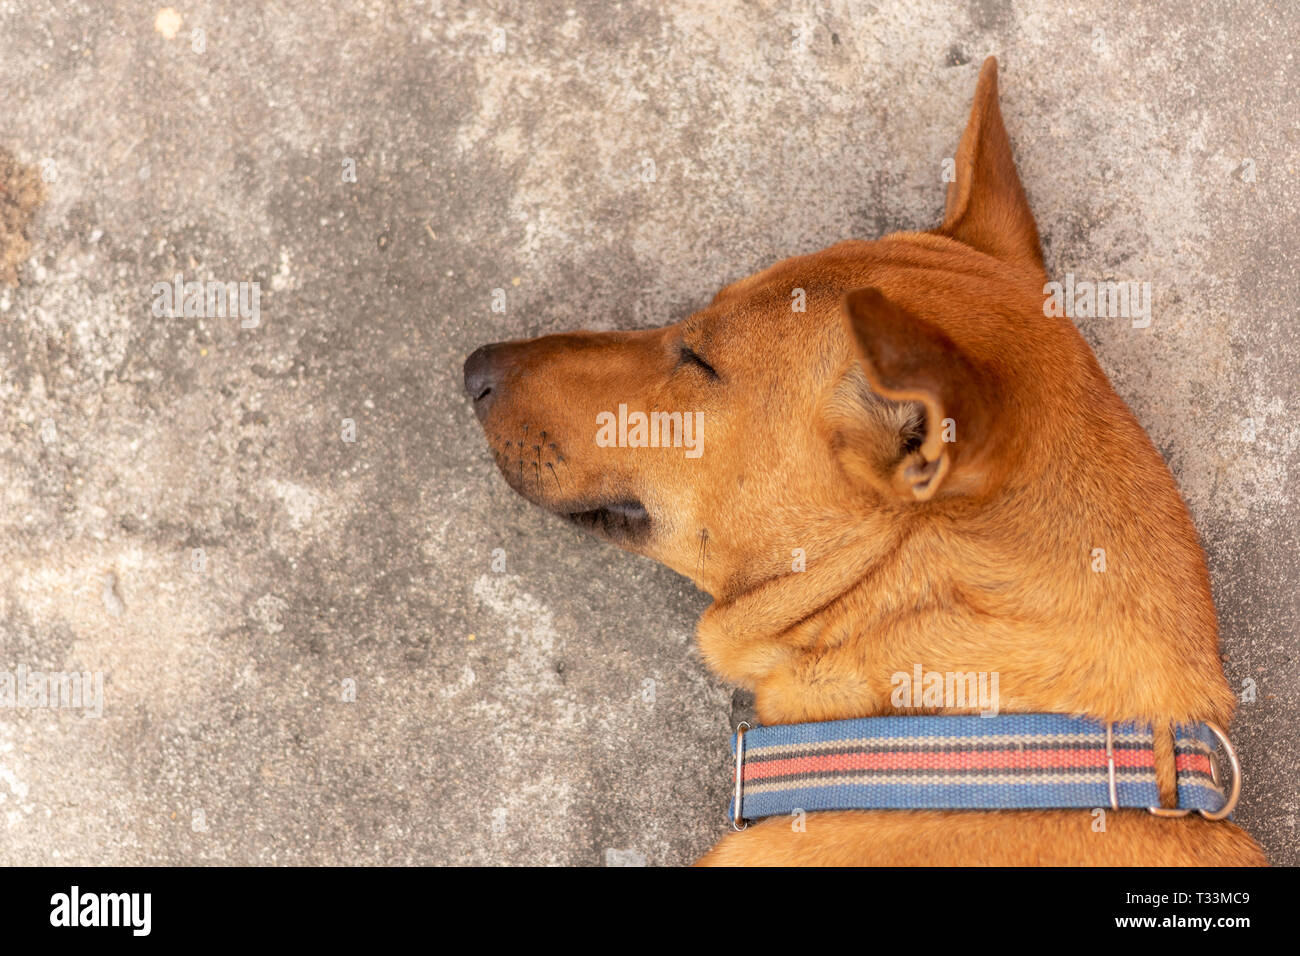 Brown dogs are sleeping on the floor. - Stock Image